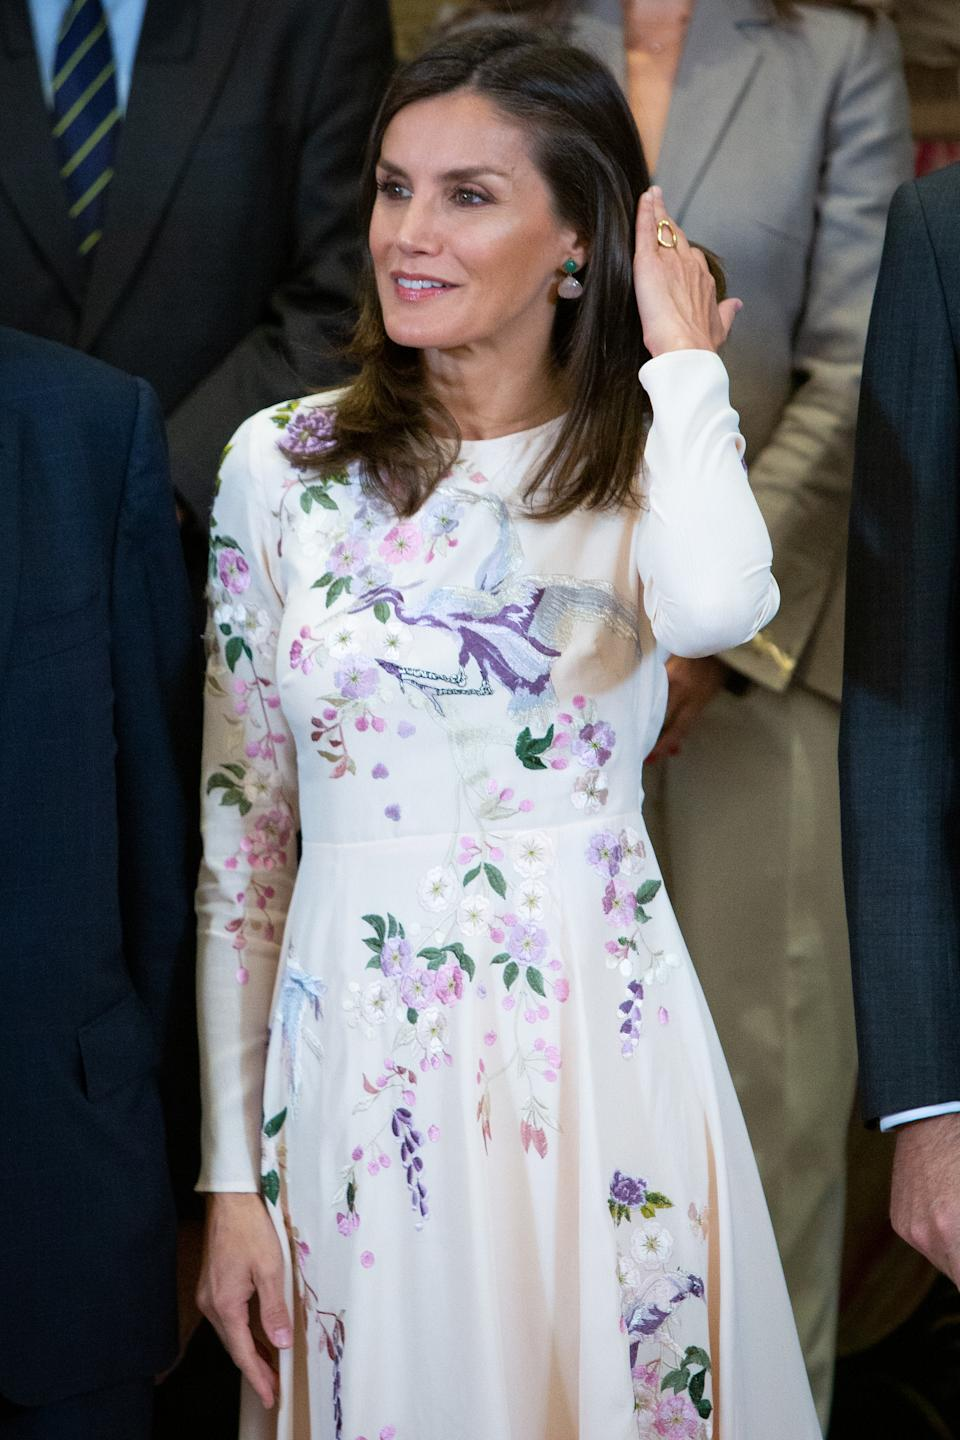 MADRID, SPAIN - JULY 08: Queen Letizia of Spain attends several audiences at Zarzuela Palace on July 08, 2019 in Madrid, Spain. (Photo by Pablo Cuadra/Getty Images)